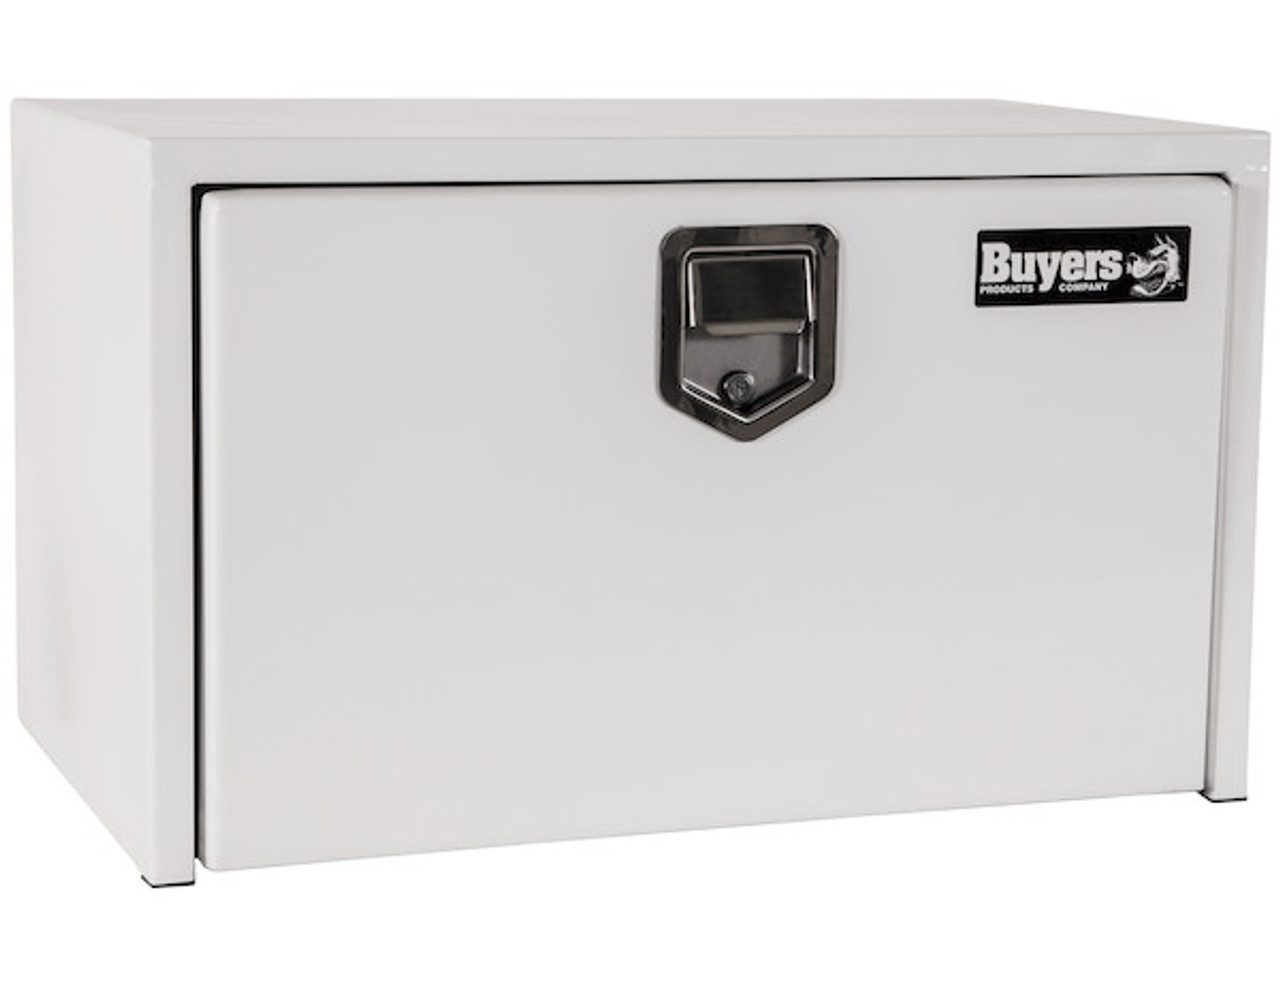 "1702205 BUYERS PRODUCTS WHITE STEEL UNDERBODY TRUCK TOOLBOX WITH PADDLE LATCH 18""HX18""DX36""W"